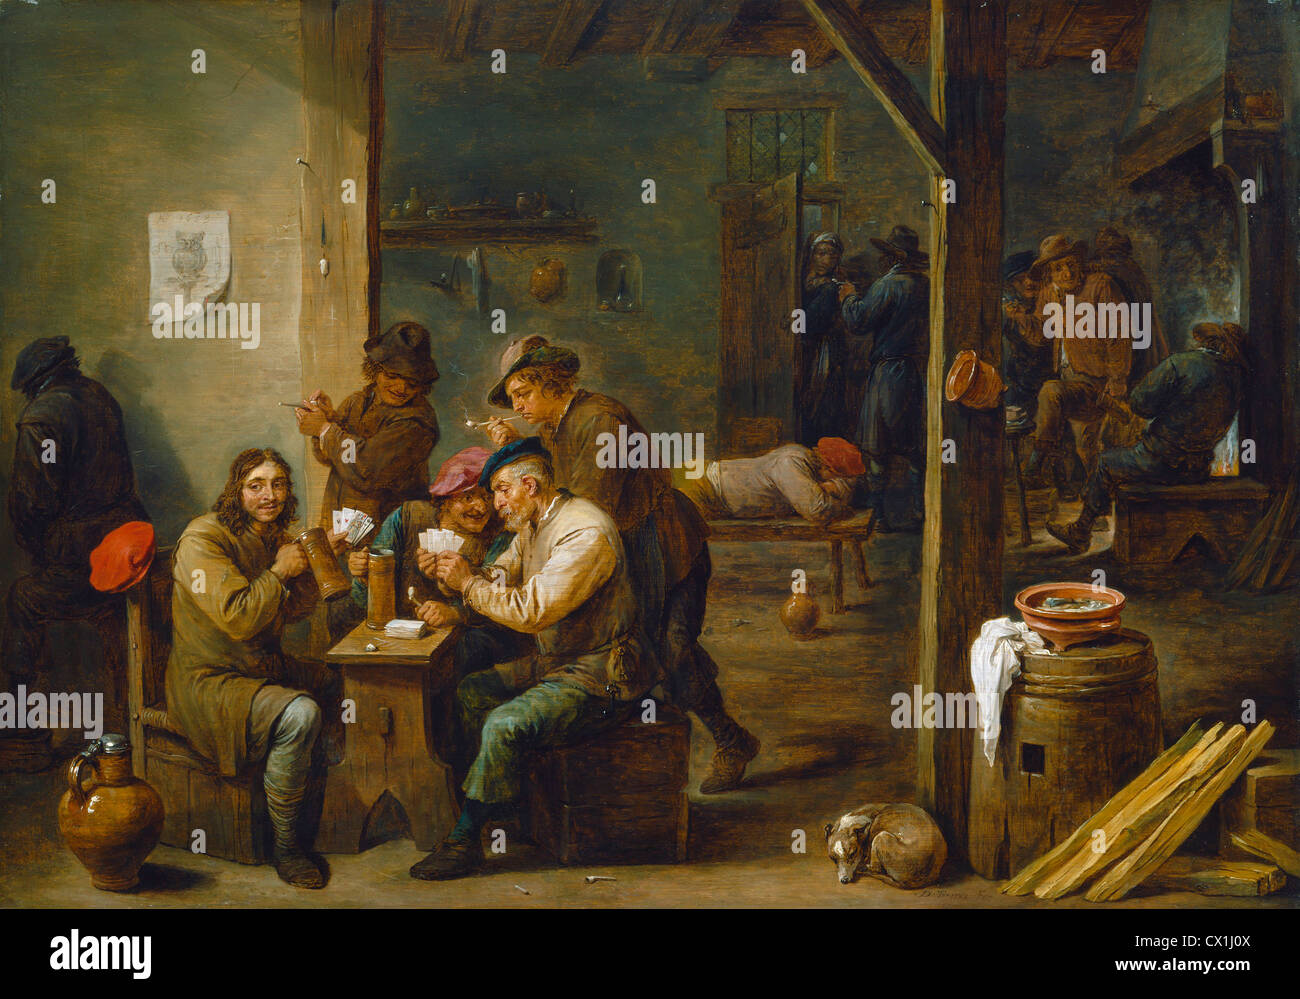 David Teniers the Younger, Tavern Scene, Flemish, 1610 - 1690, 1658, oil on  panel